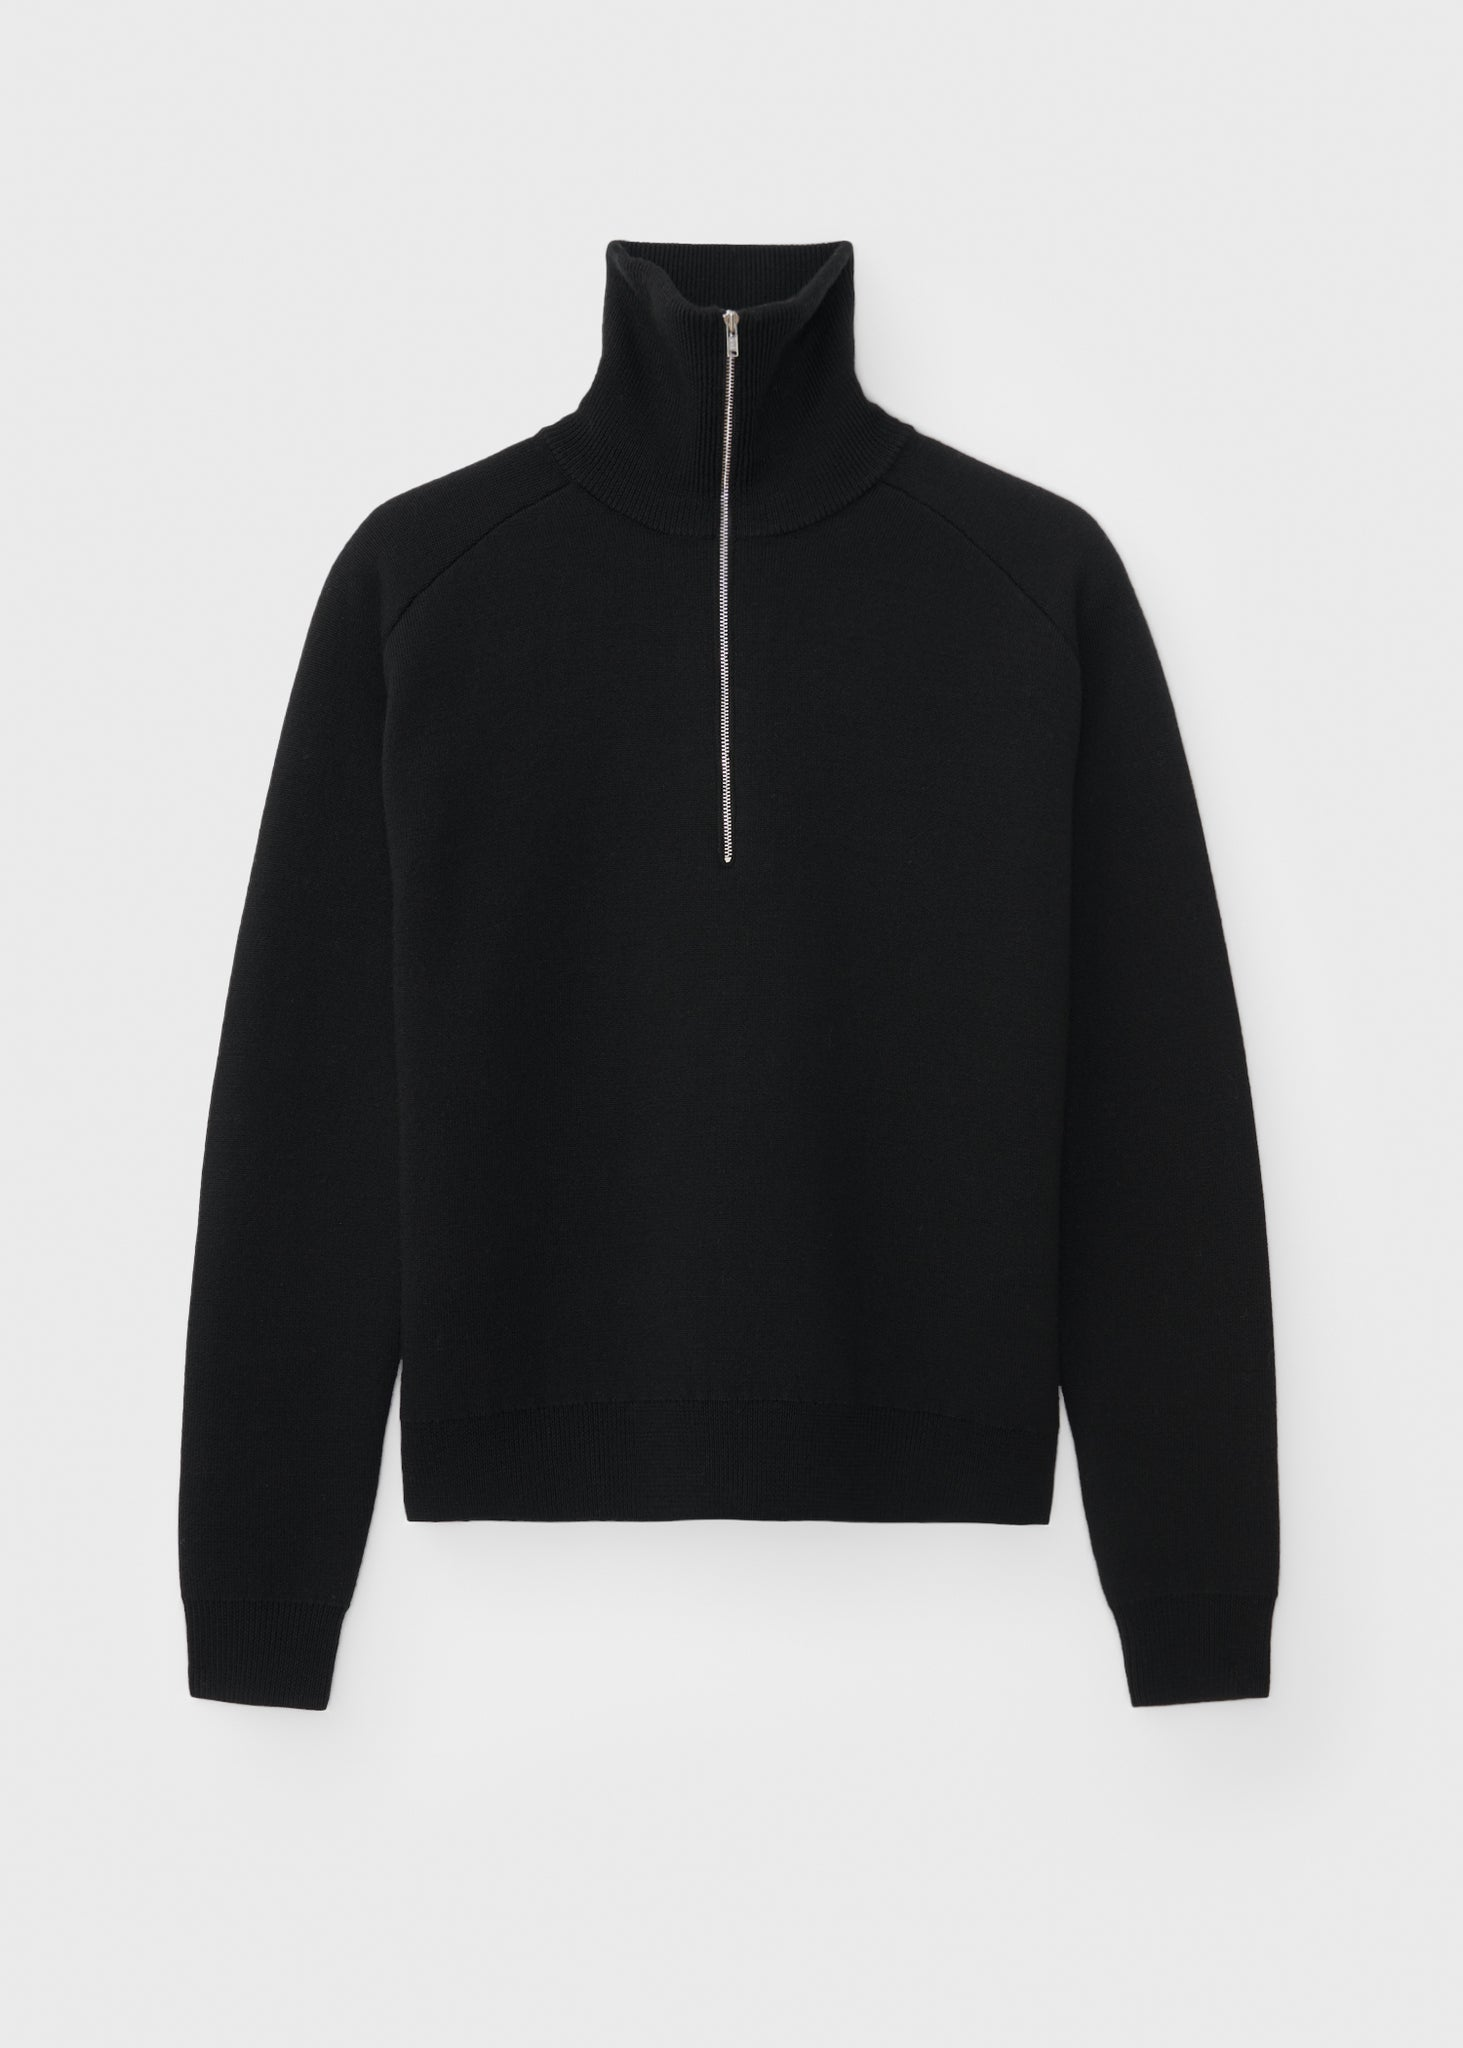 Merino wool zip knit black